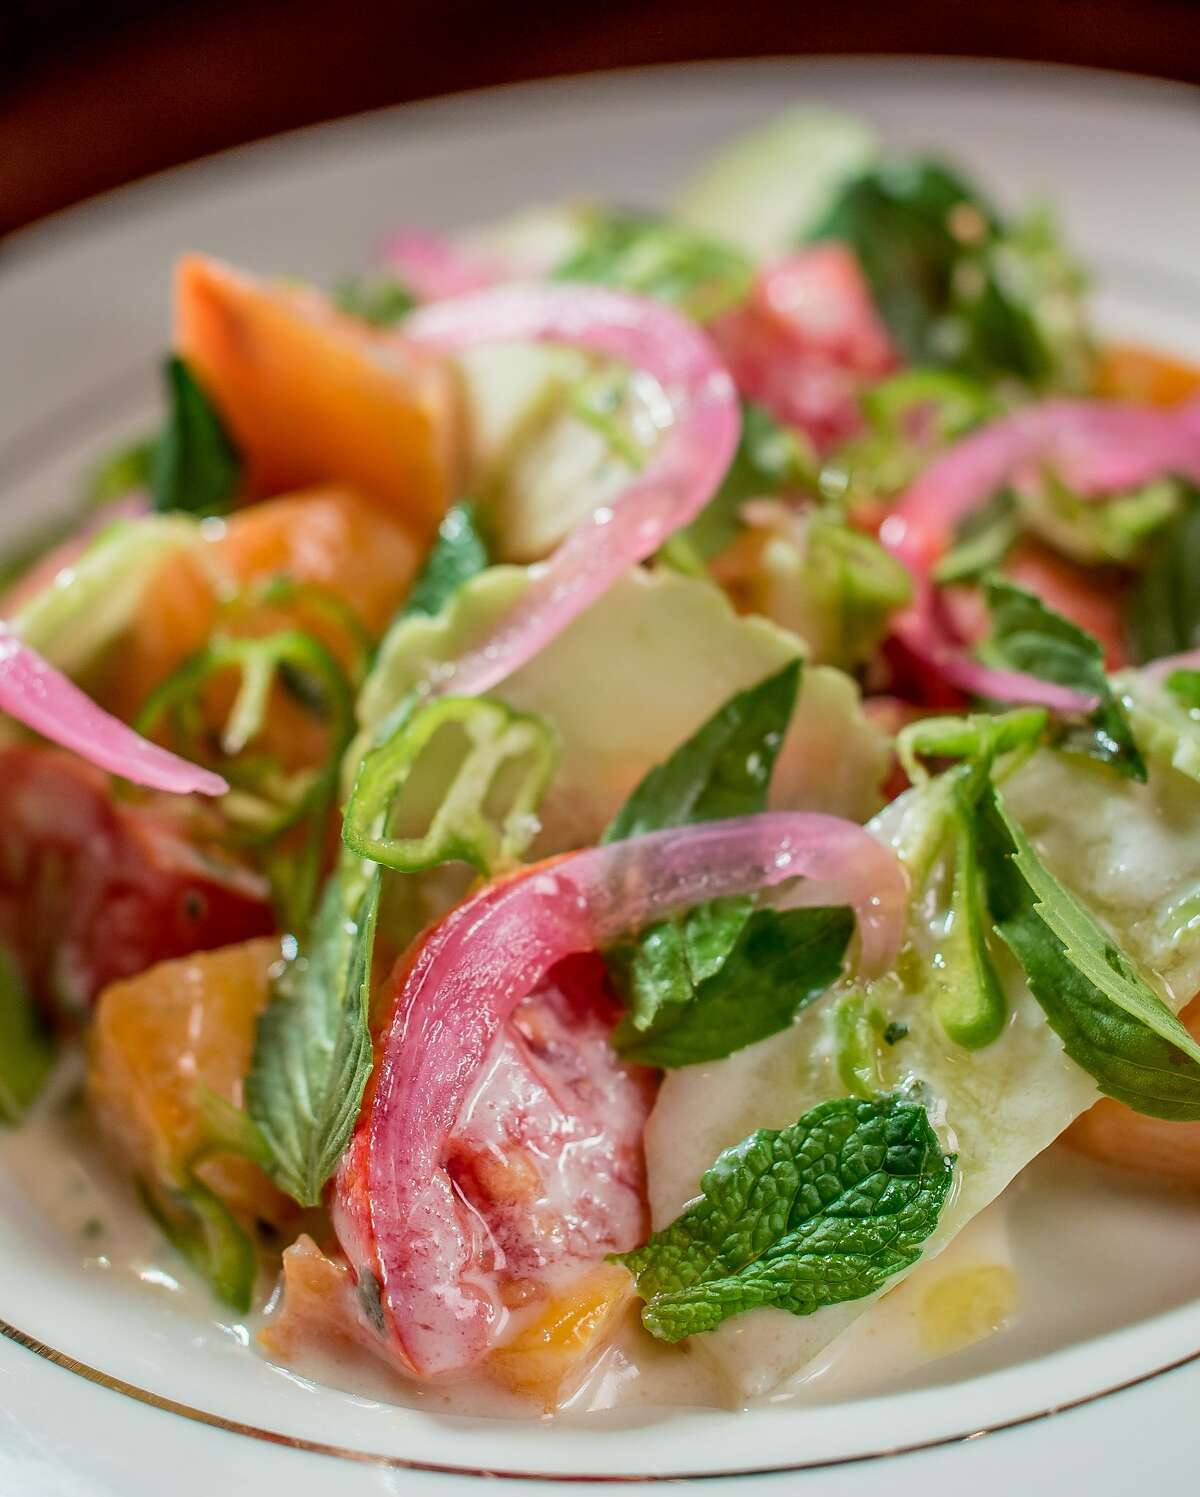 The Tomato Salad at the Viking Room in San Francisco, Calif., is seen on August 14th, 2015.